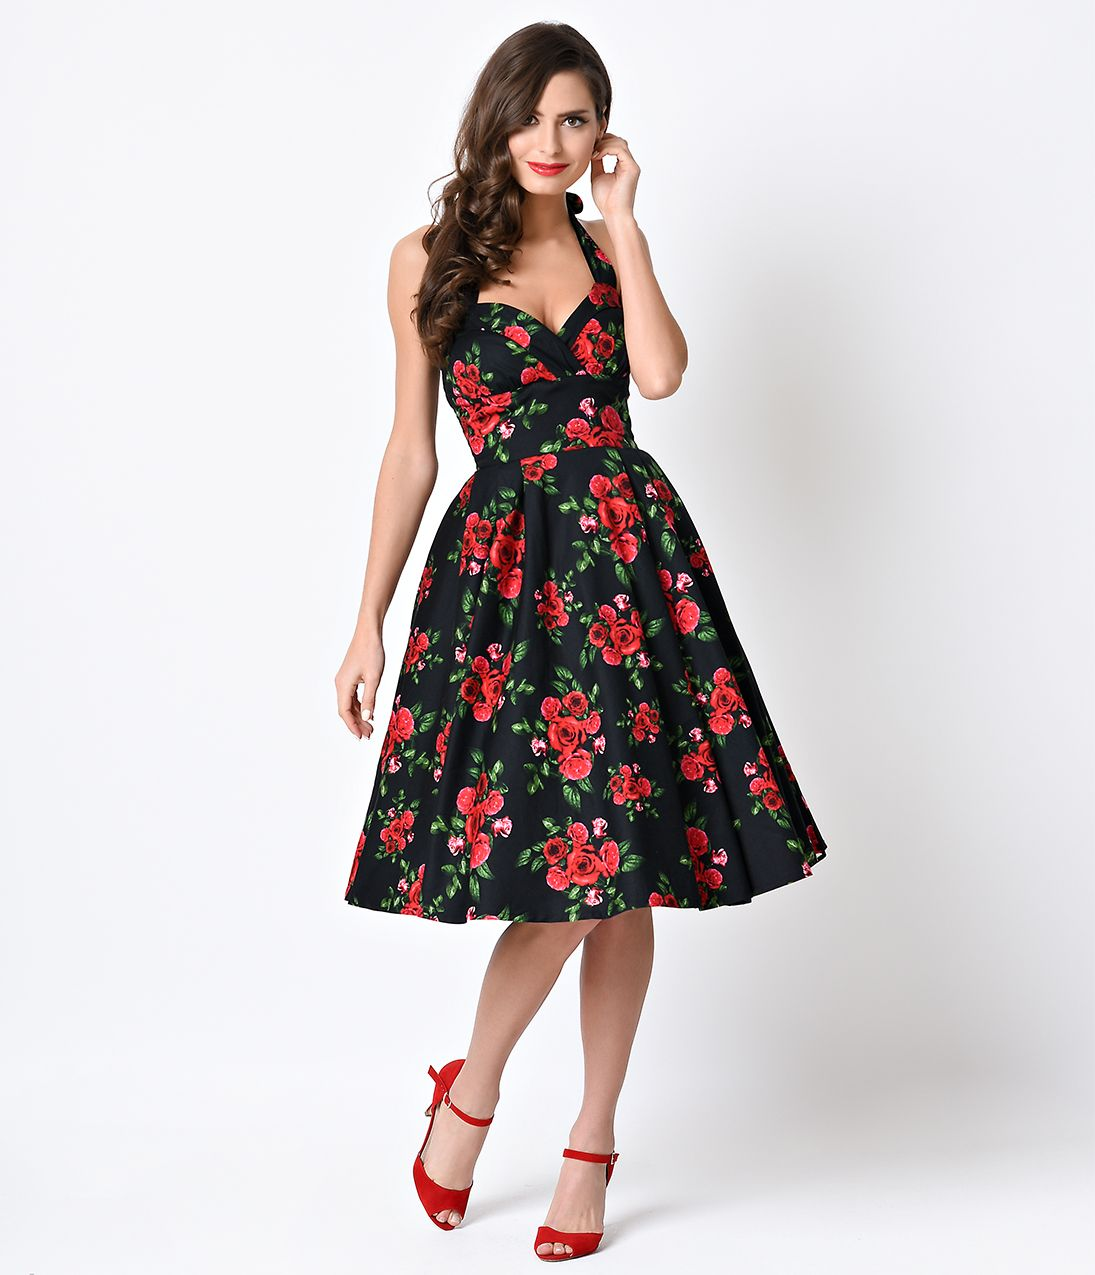 2af939020c64 Hell Bunny Retro Rose Floral Halter Cannes Swing Dress $108.00 AT  vintagedancer.com